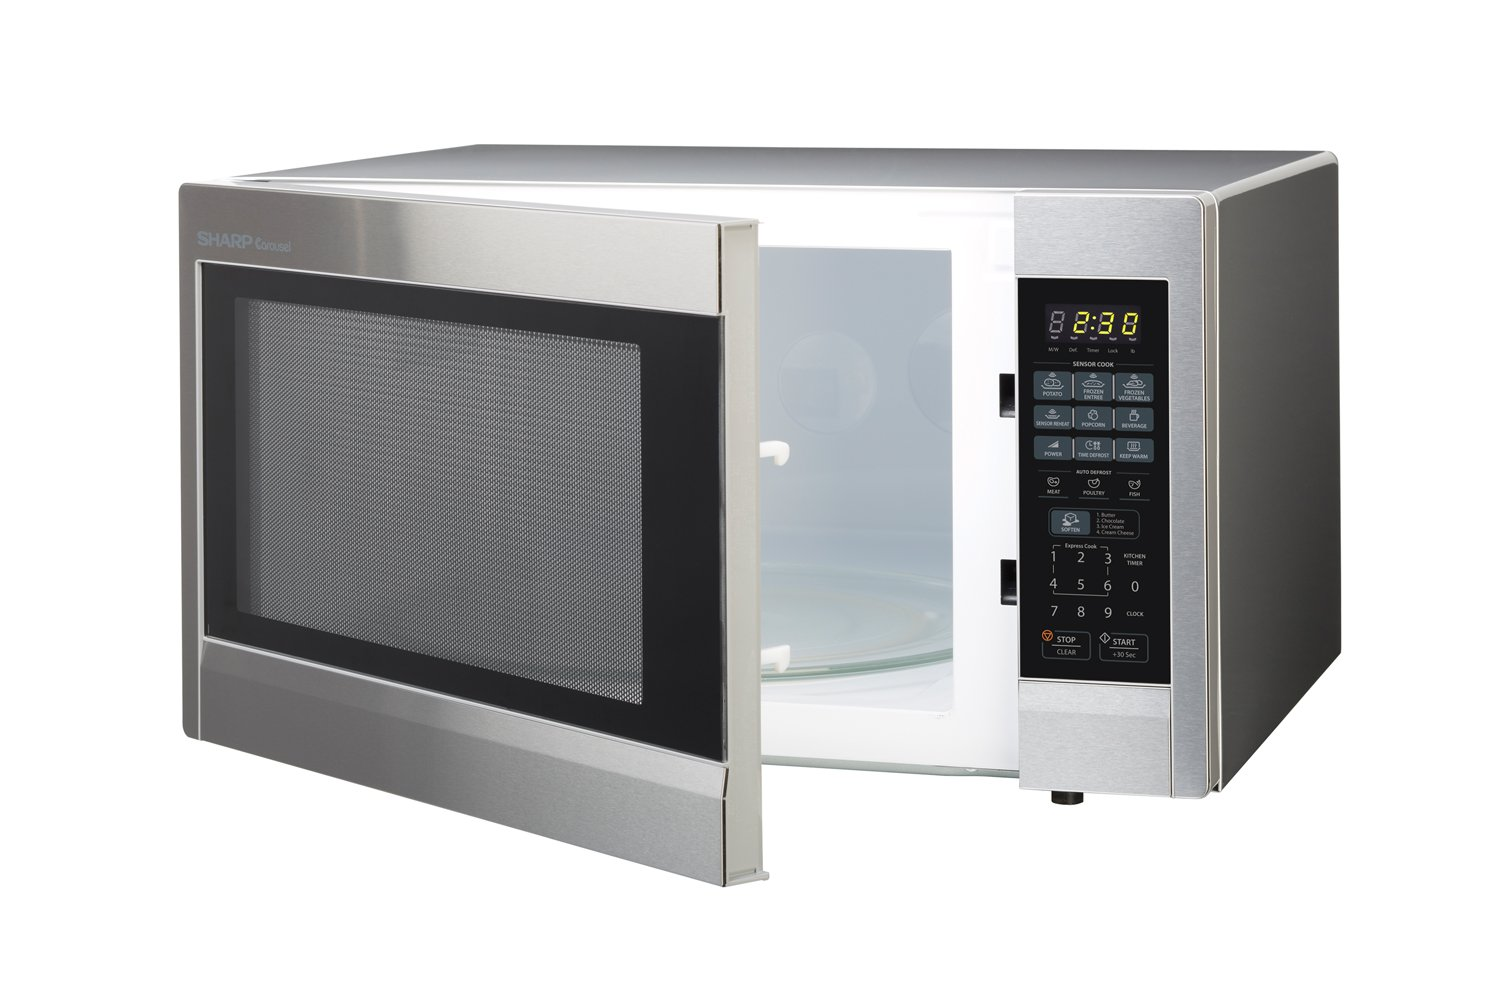 Best Microwave Oven 2021: What Are The Top Microwaves On The Market? 2